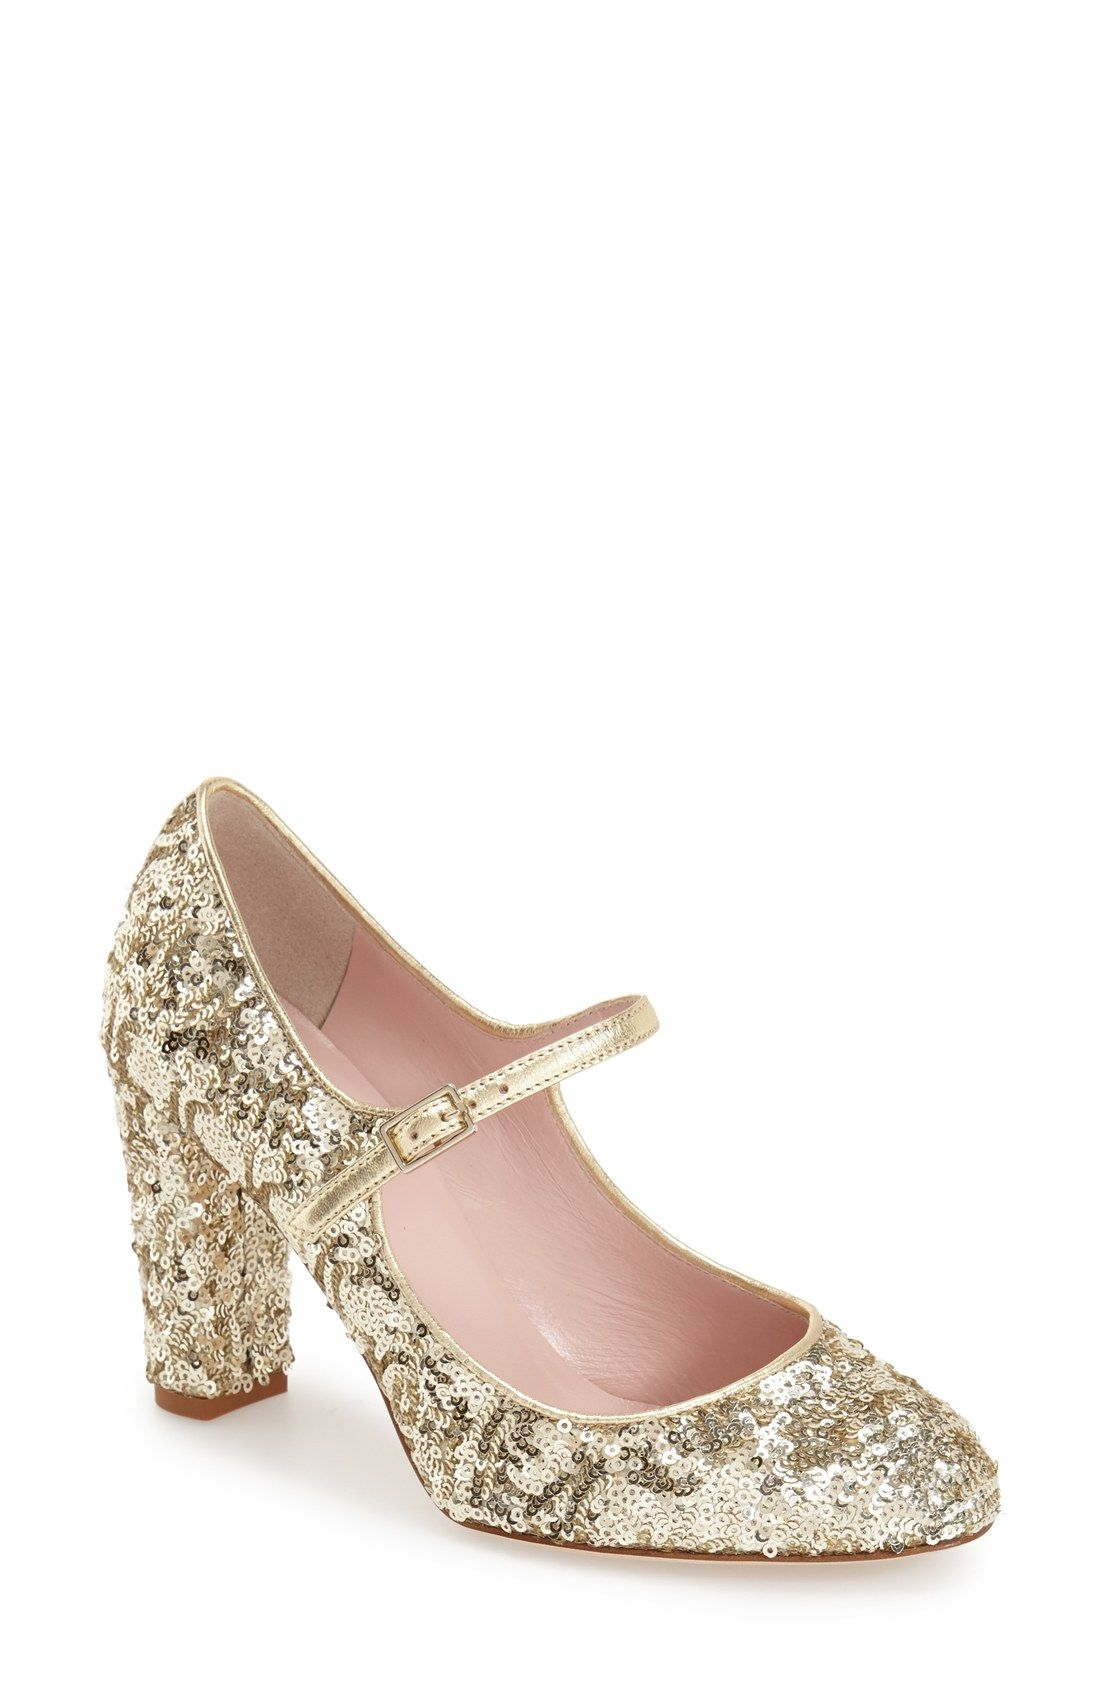 3ea8763be866 kate spade new york  angelique  mary jane pump (Women) Gold glitter wow!